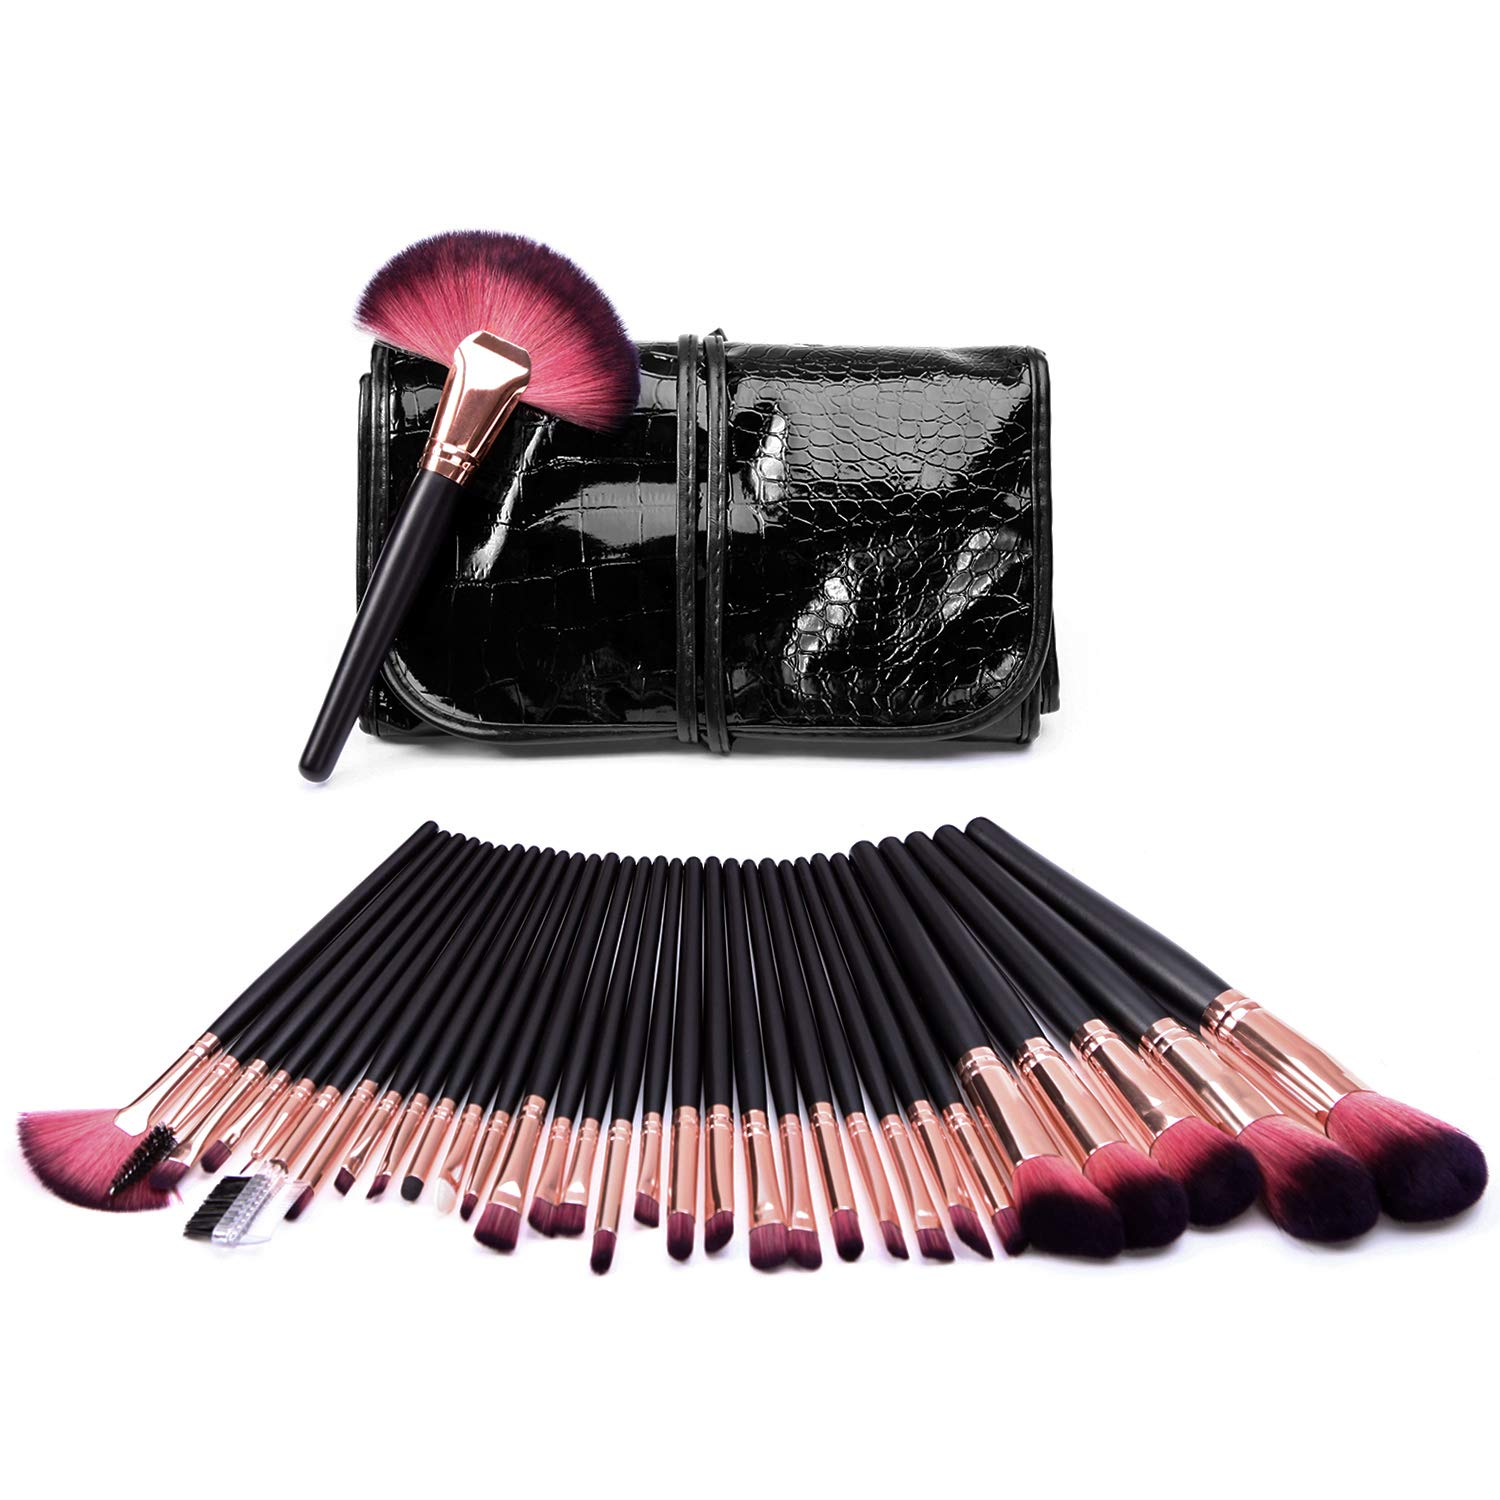 Lisli 32pcs Professional Makeup Brushes Set Essential Cosmetics with Bag for Powder Foundation Blending Blush Concealer Eyeshadow Eyeliner Lip